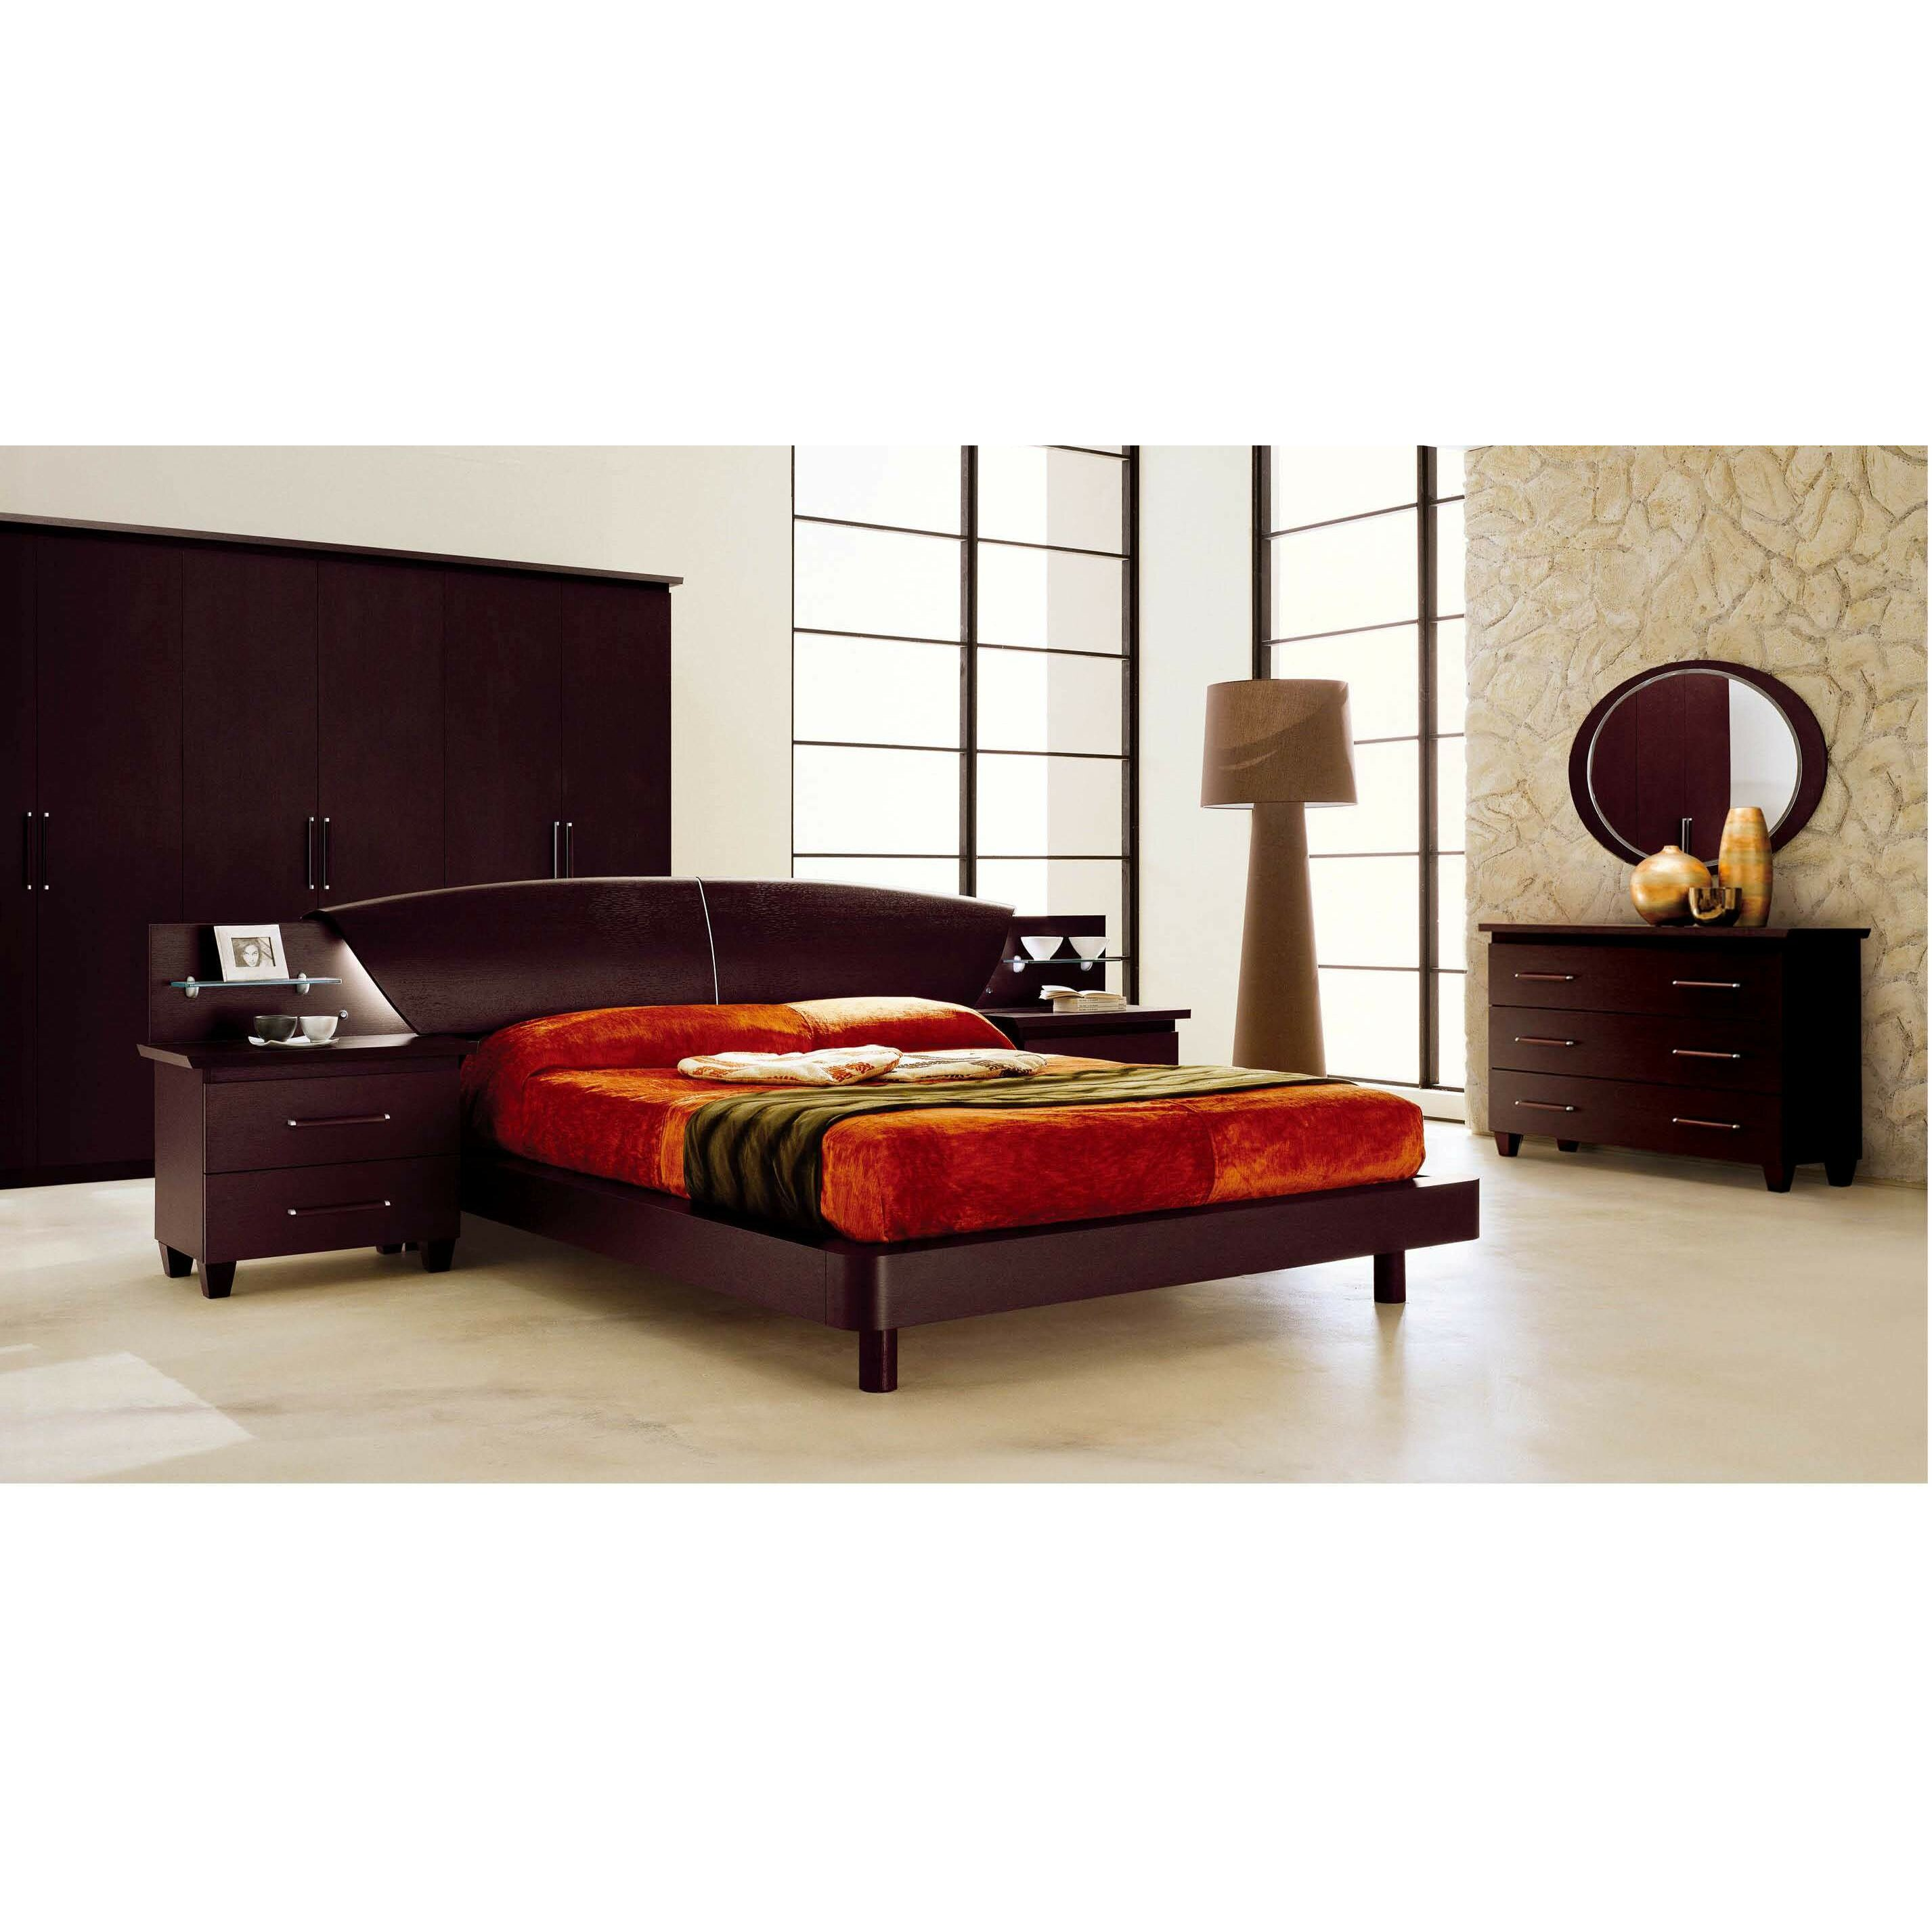 Nocidesign panel 3 piece bedroom set wayfair for Bedroom 3 piece sets